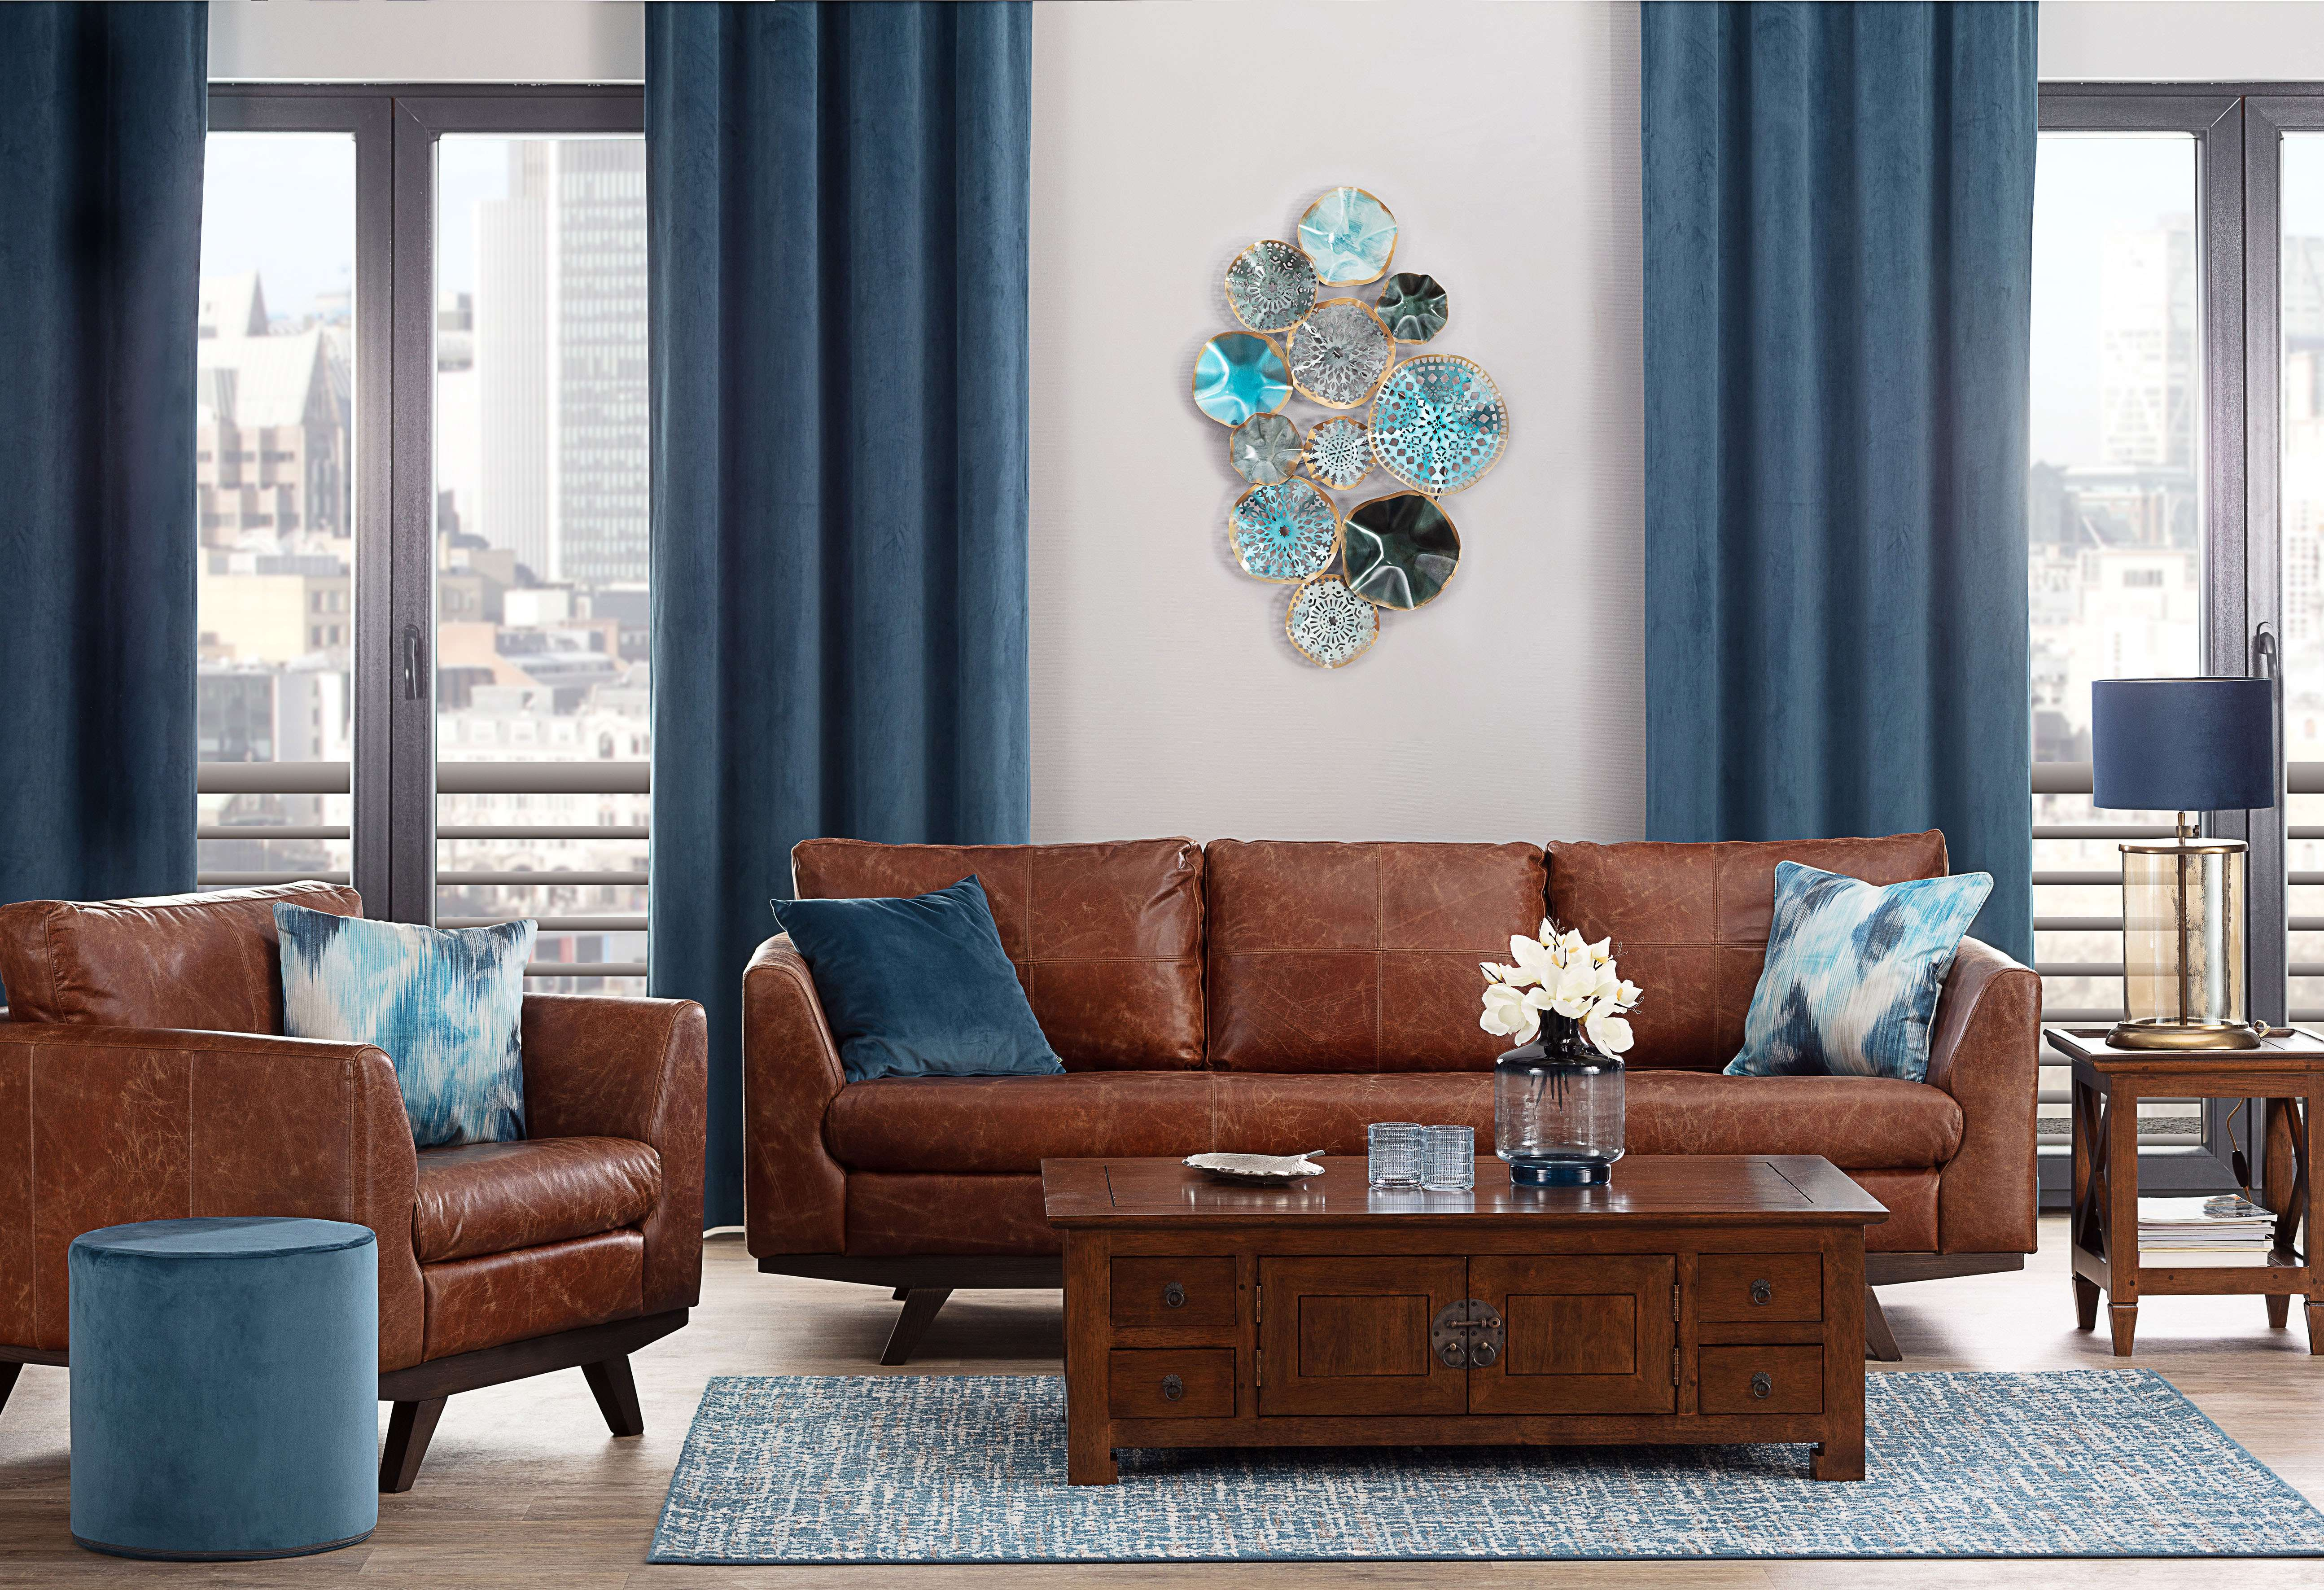 Tan Leather & Blue Living Room